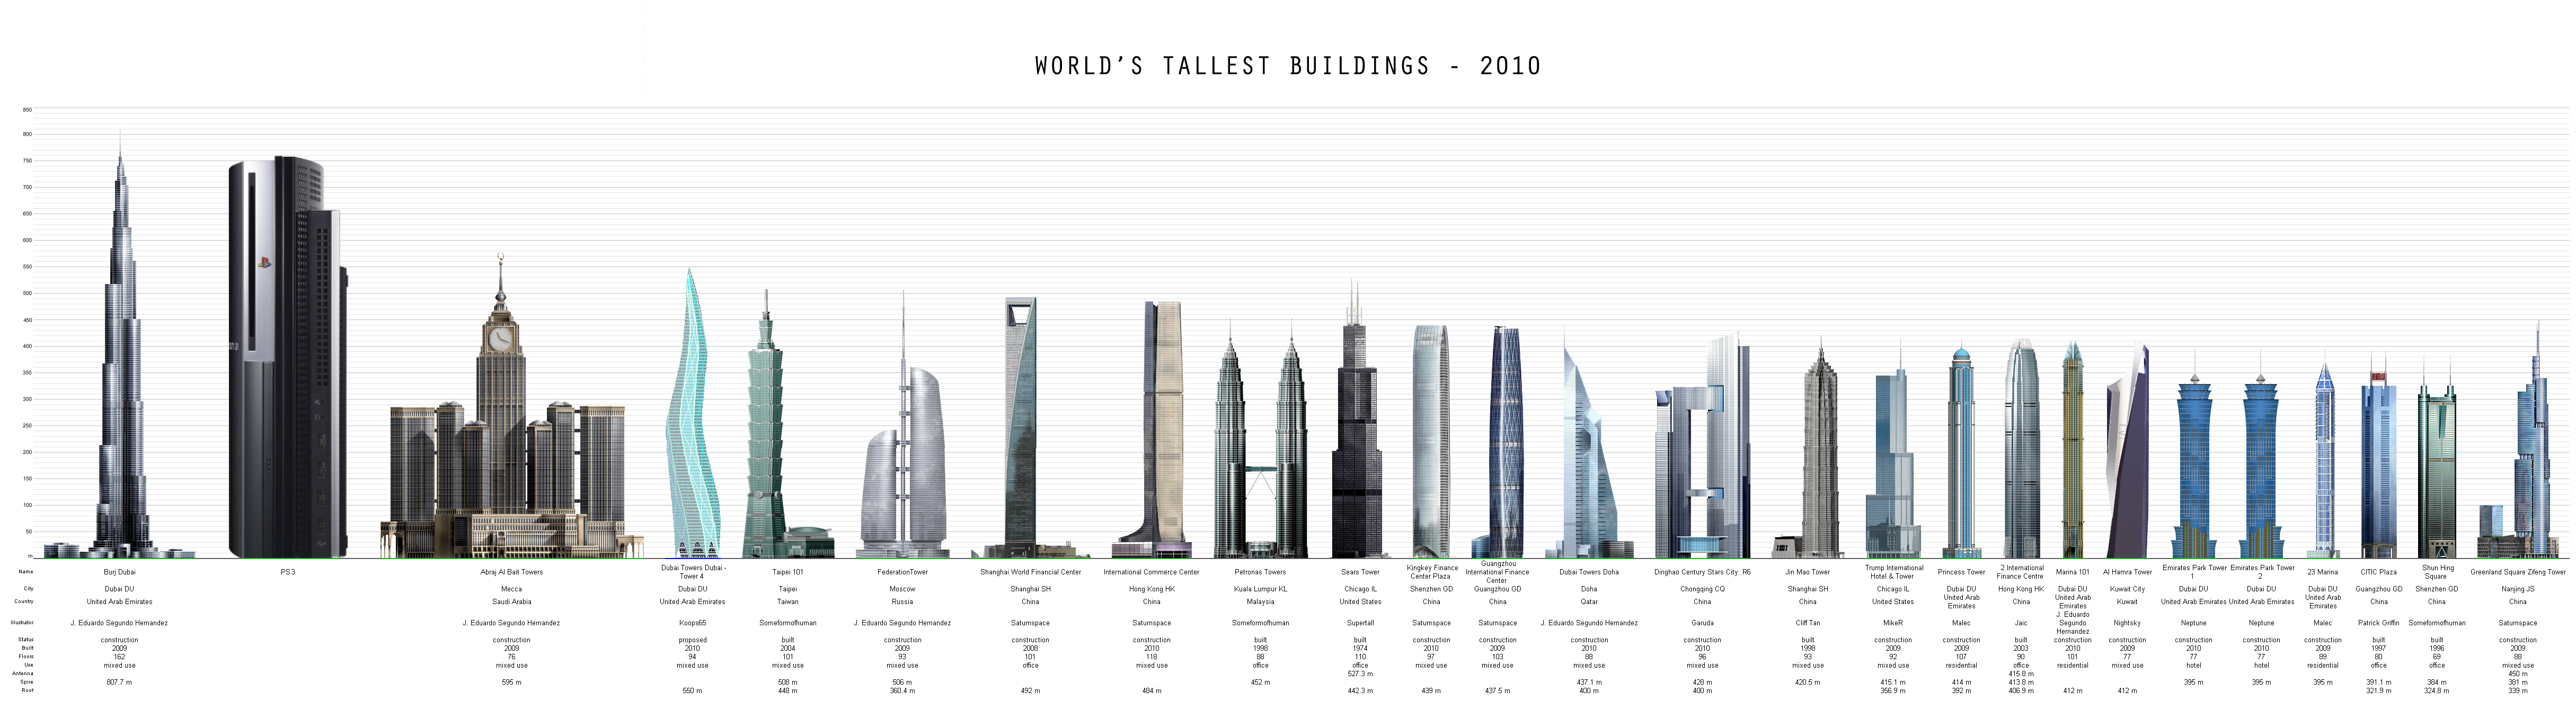 Worlds tallest building in year 2010